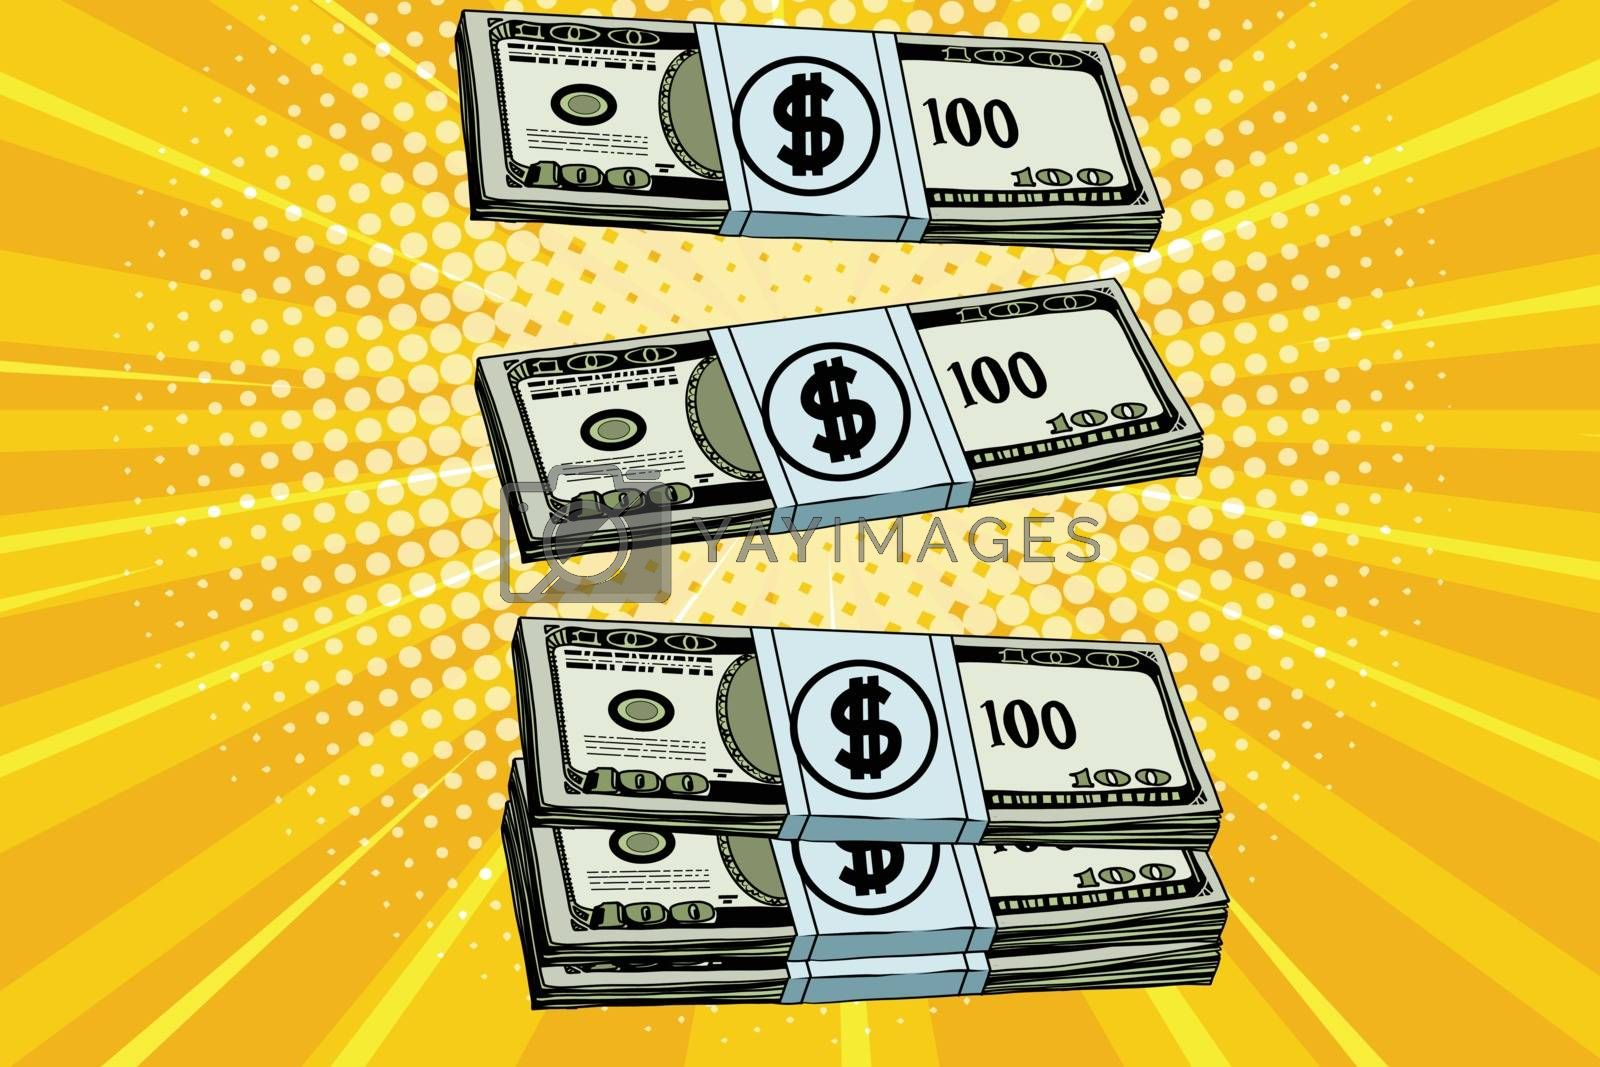 Packs of dollars money, pop art retro vector illustration